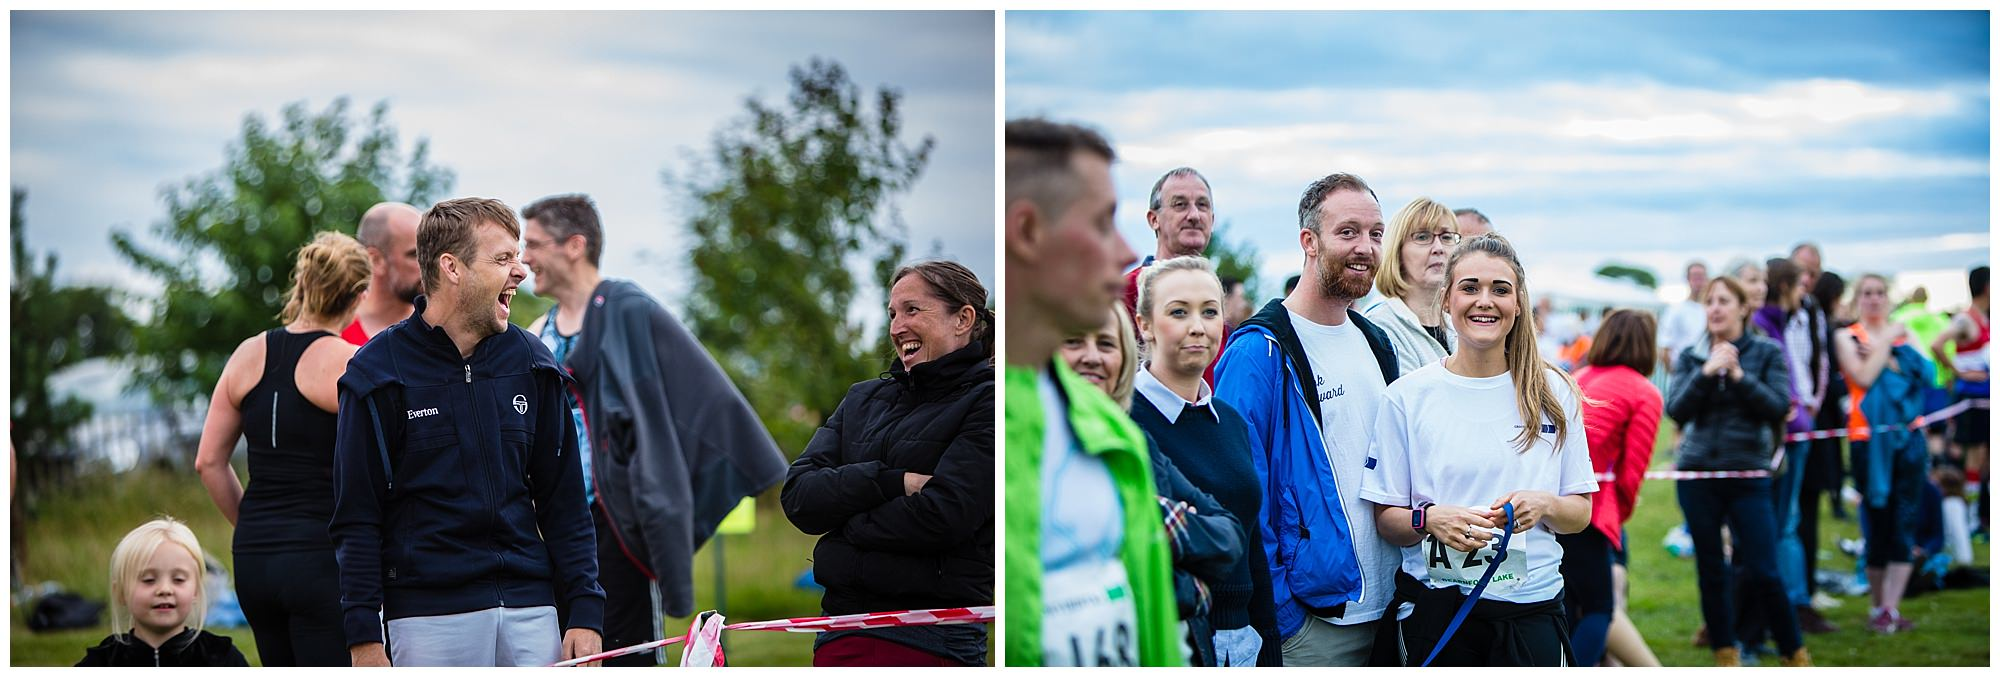 runners family and friends supporting runners during the running event . whitchurch